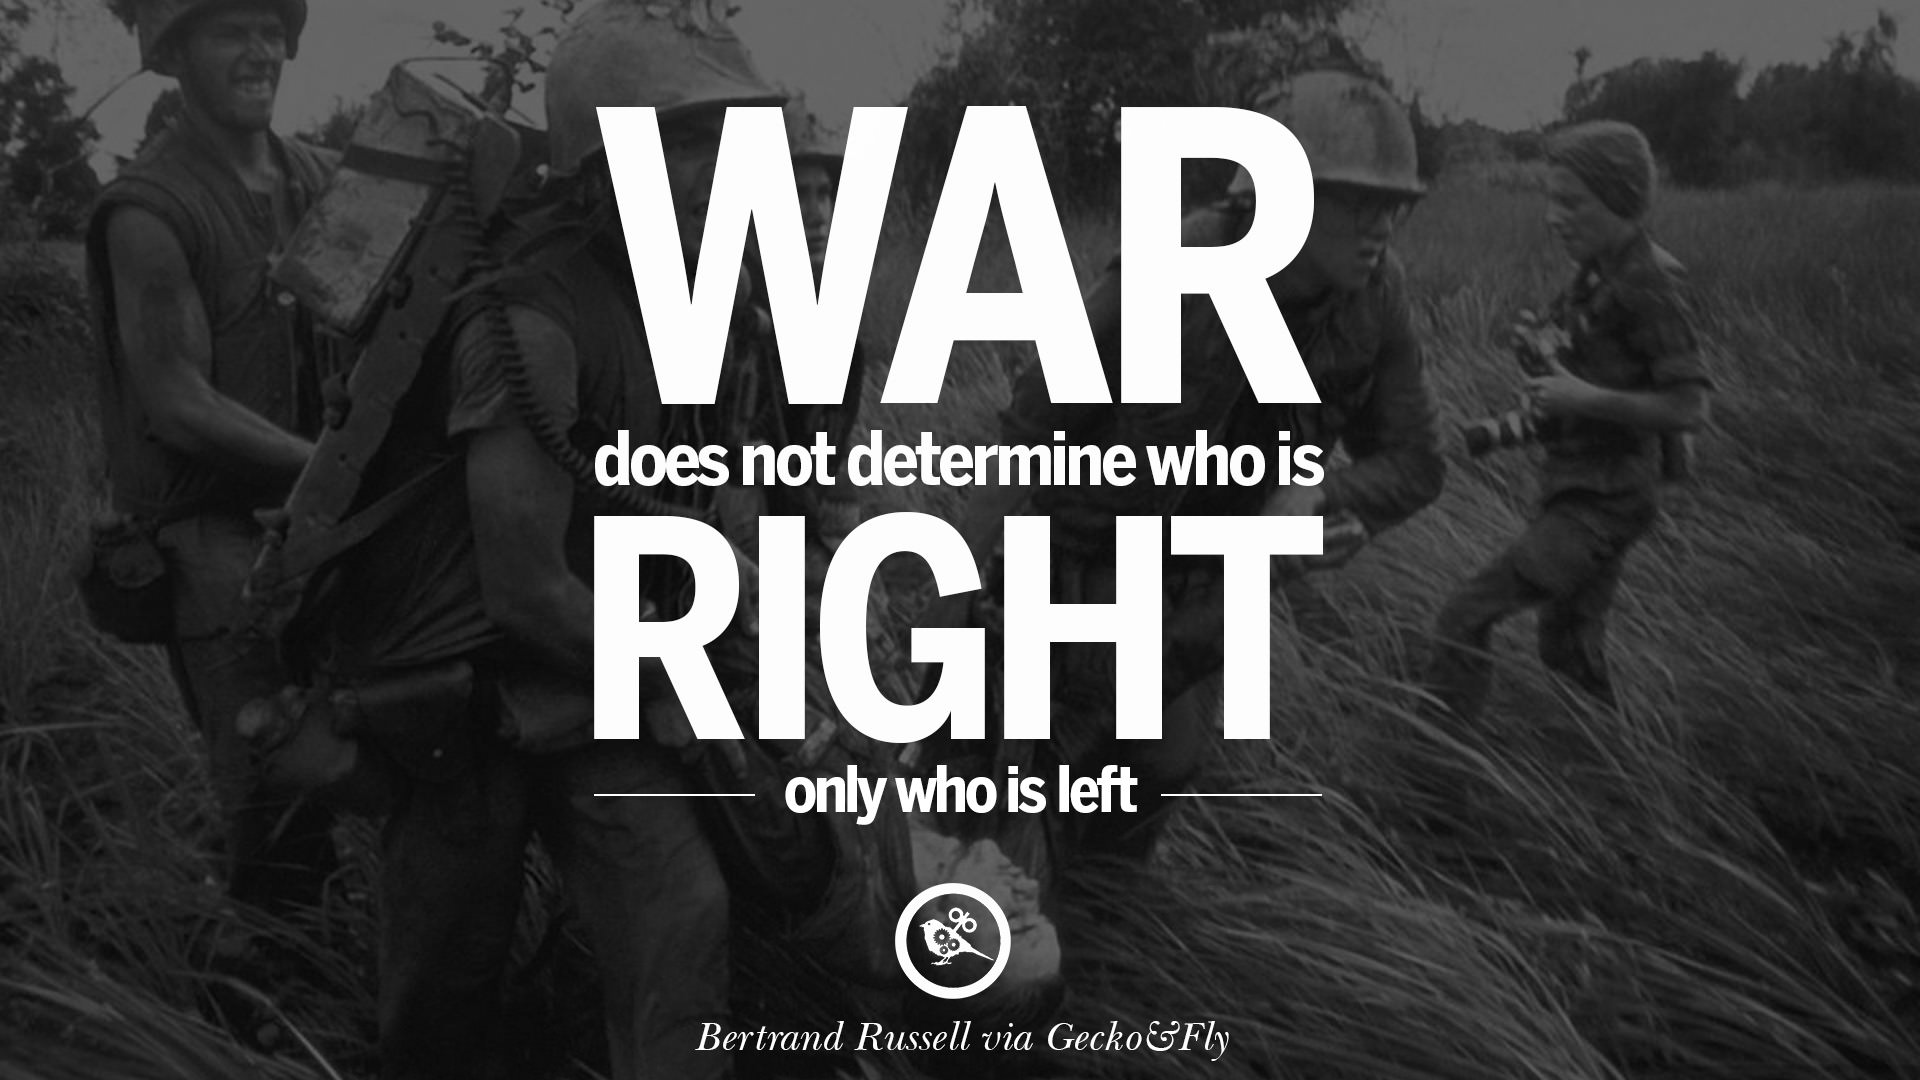 Quotes About War 10 Famous Quotes About War On World Peace Death Violence